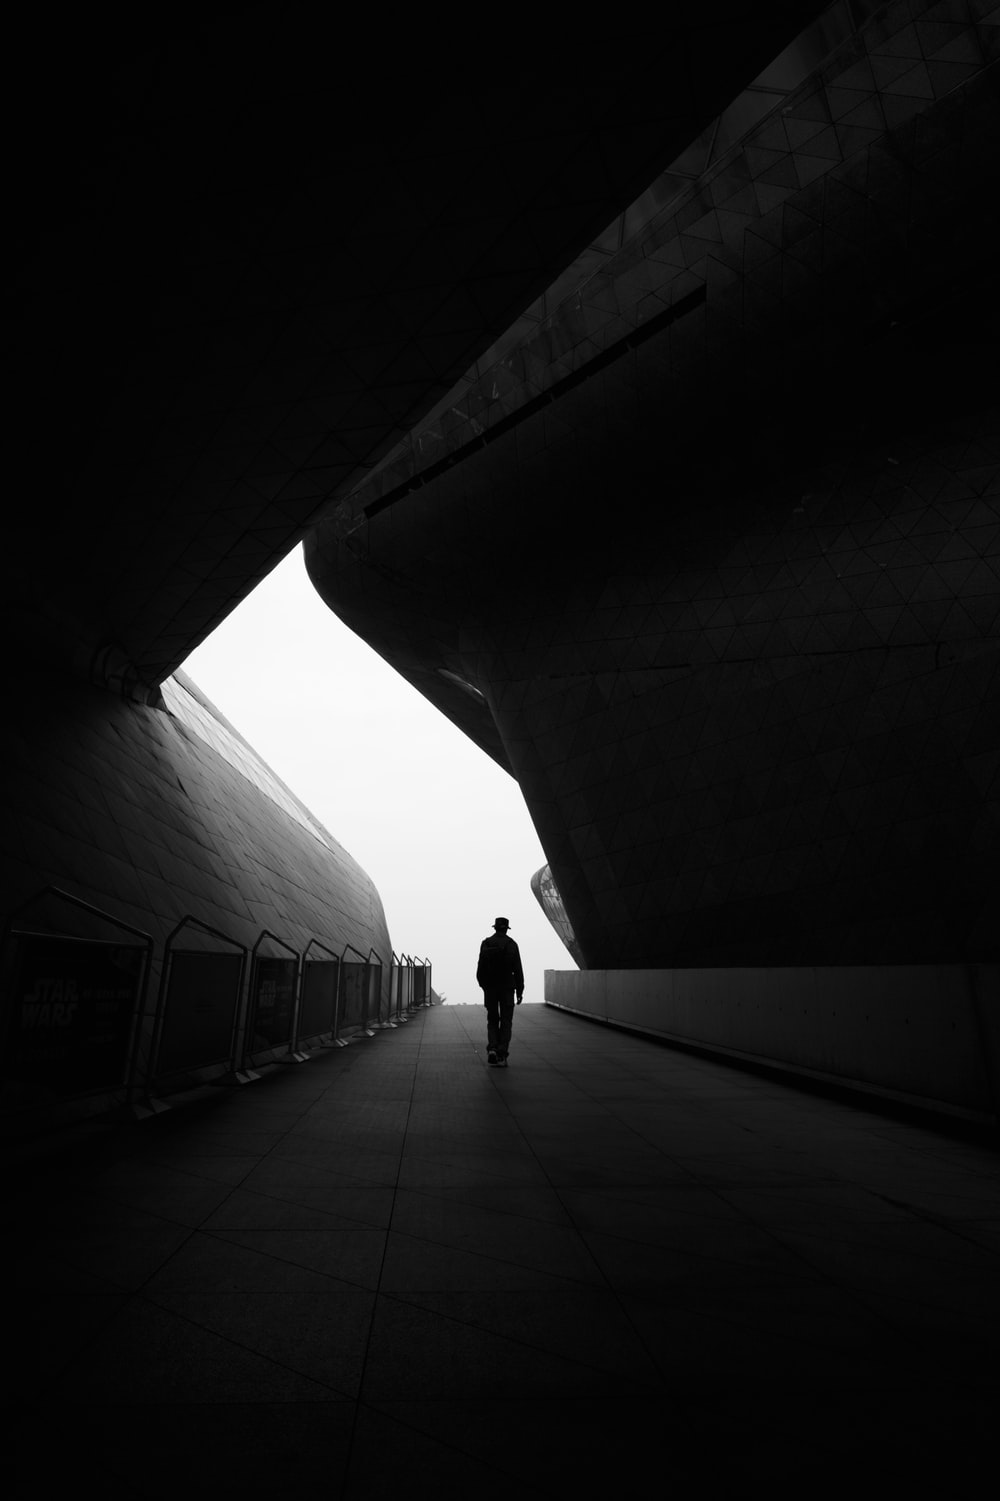 grayscale photo of person walking on pathway